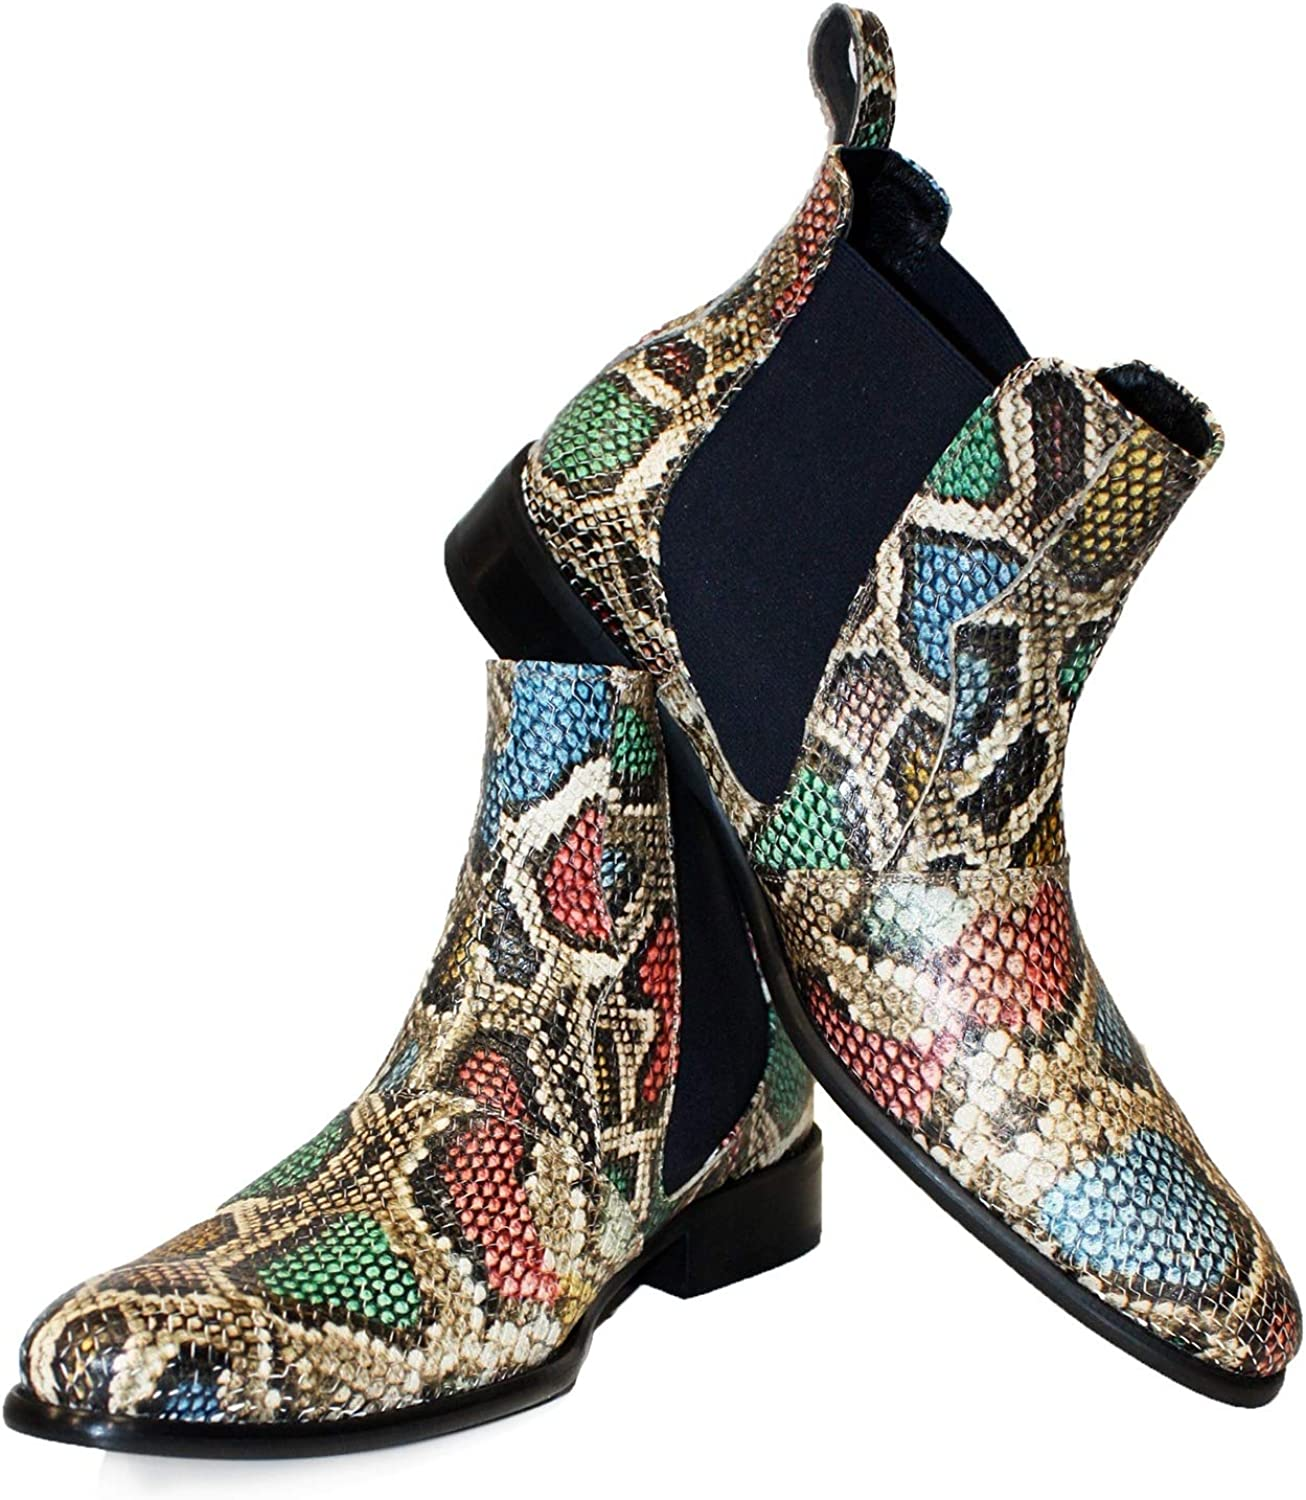 Peppeshoes Modello Rena - Handmade Italian Leather Mens color colorful Ankle Chelsea Boots - Cowhide Embossed Leather - Slip-On